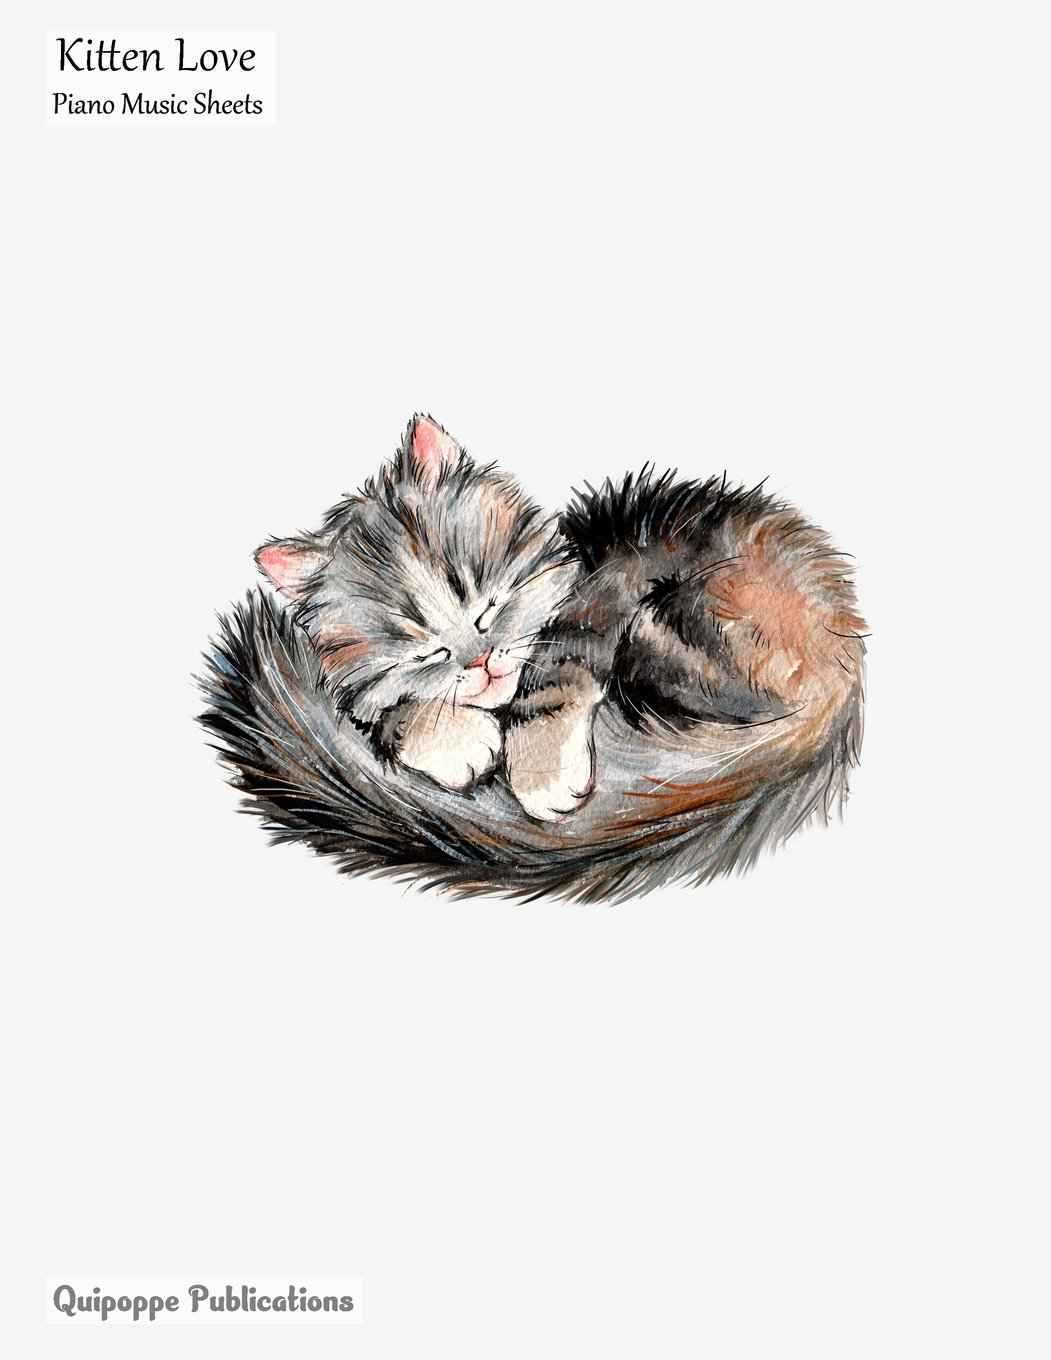 Download Kitten Love Piano Music Sheets: Large Music Notation and Songwriting Notebook For Piano Players With Kitten Love Lovely Sleeping Kitten Cover ebook